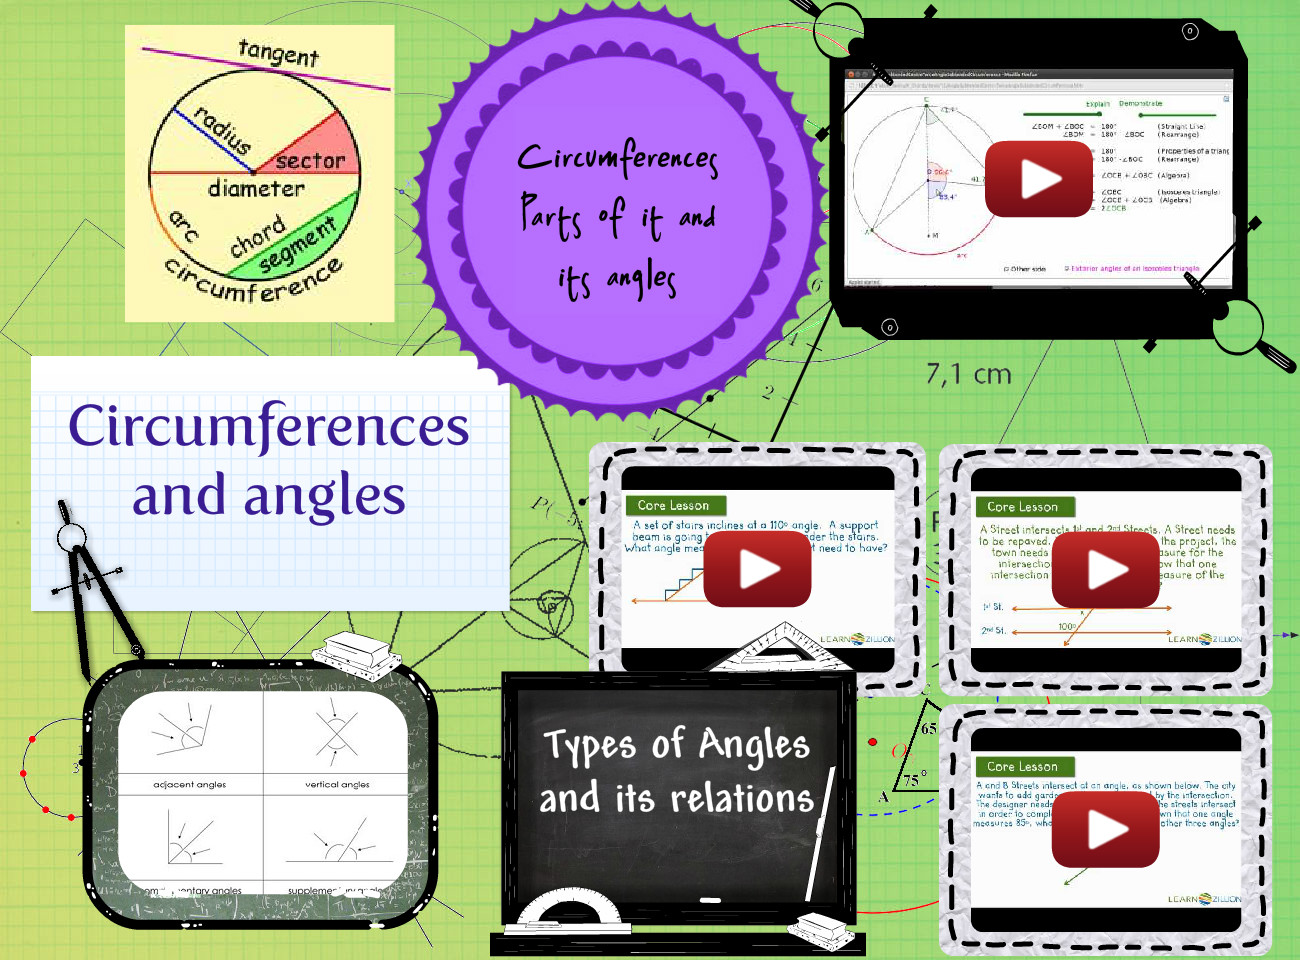 Circumferences - Parts Of It And Its Angles